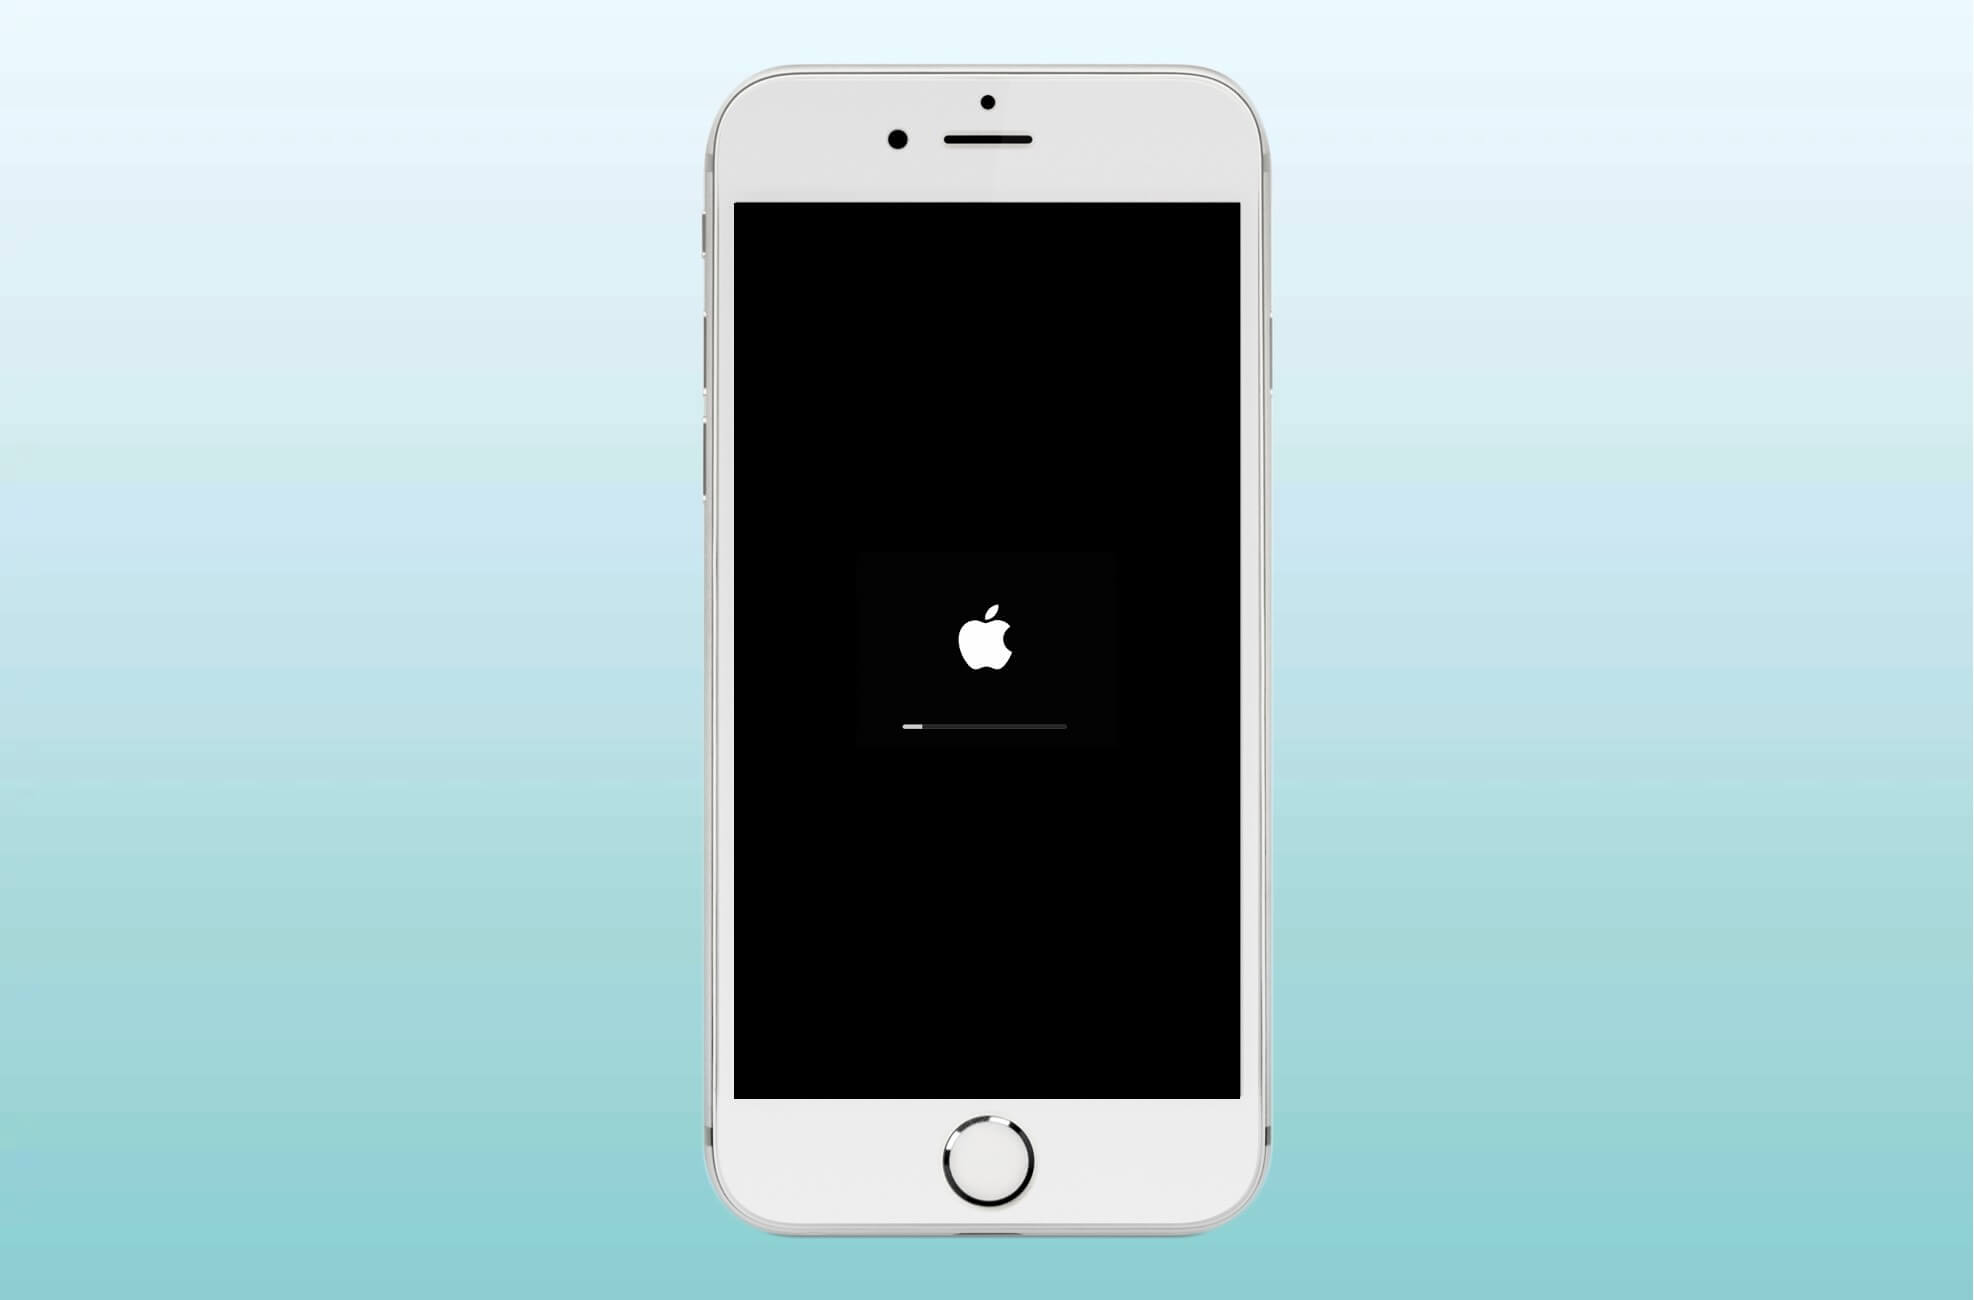 Restart iPhone with Home Button